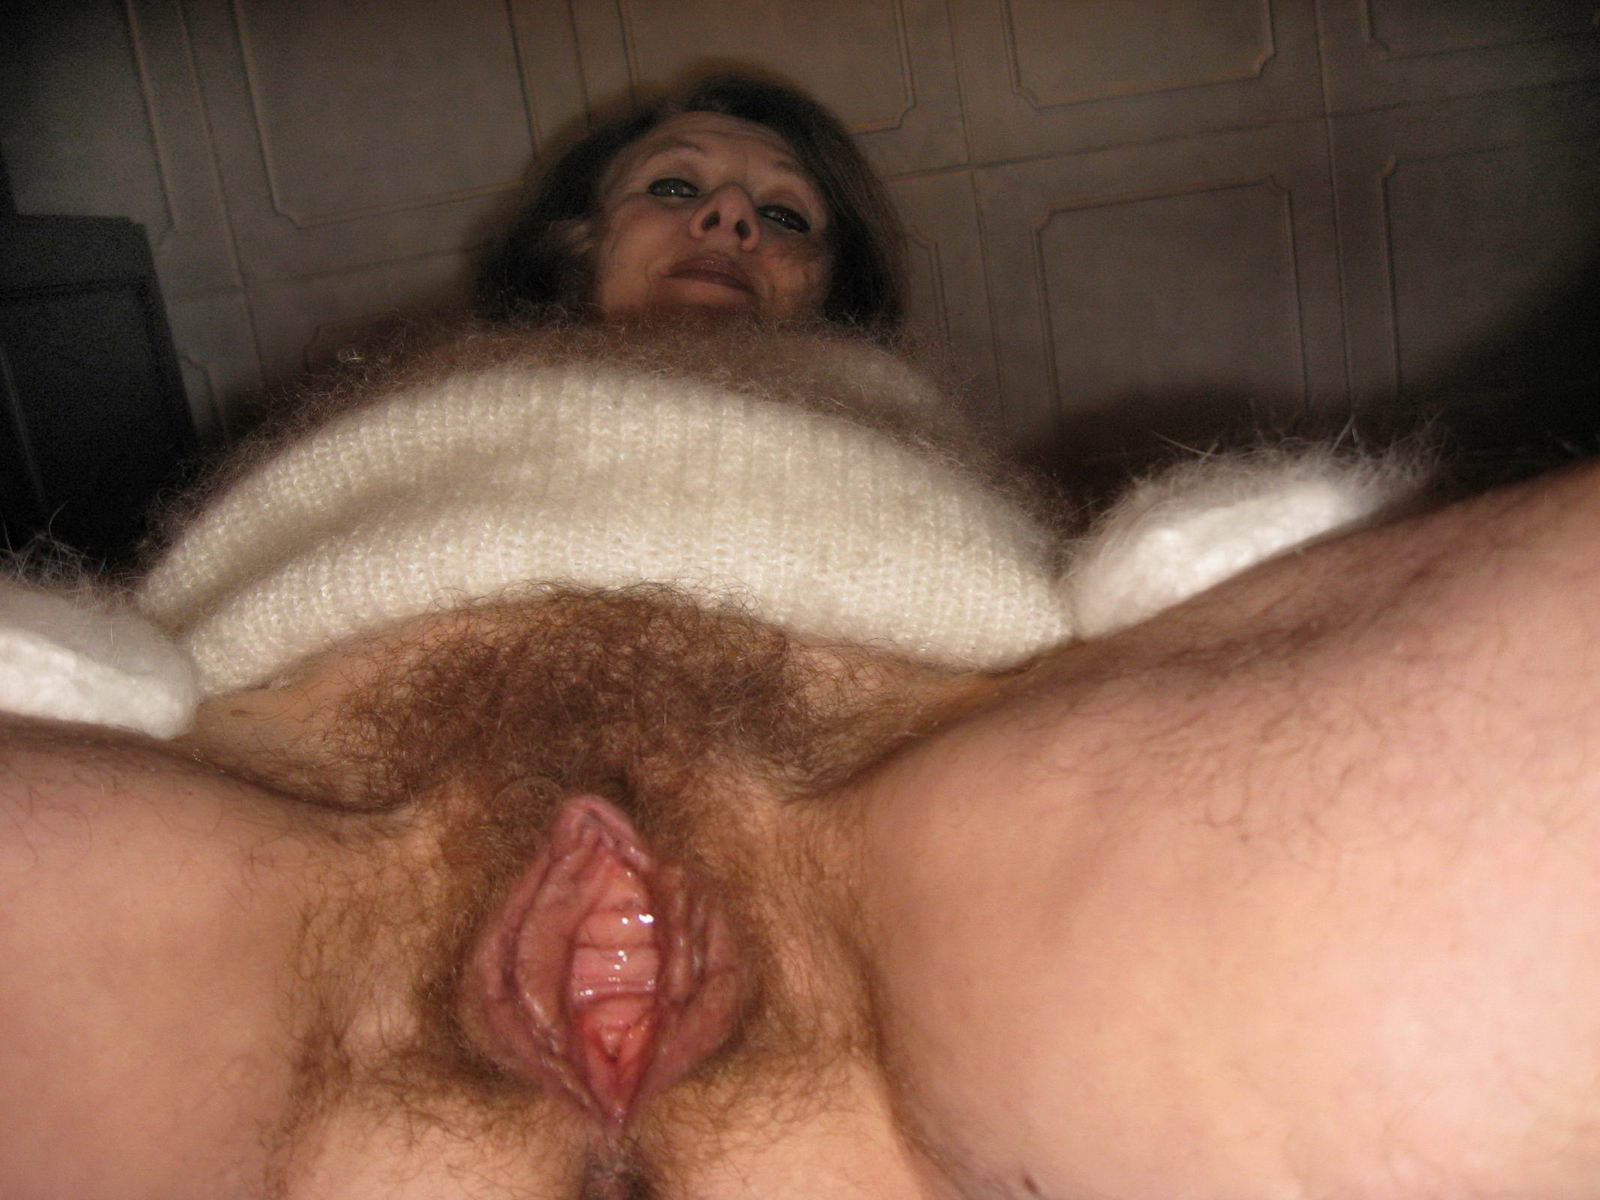 Mature hot free porn would like